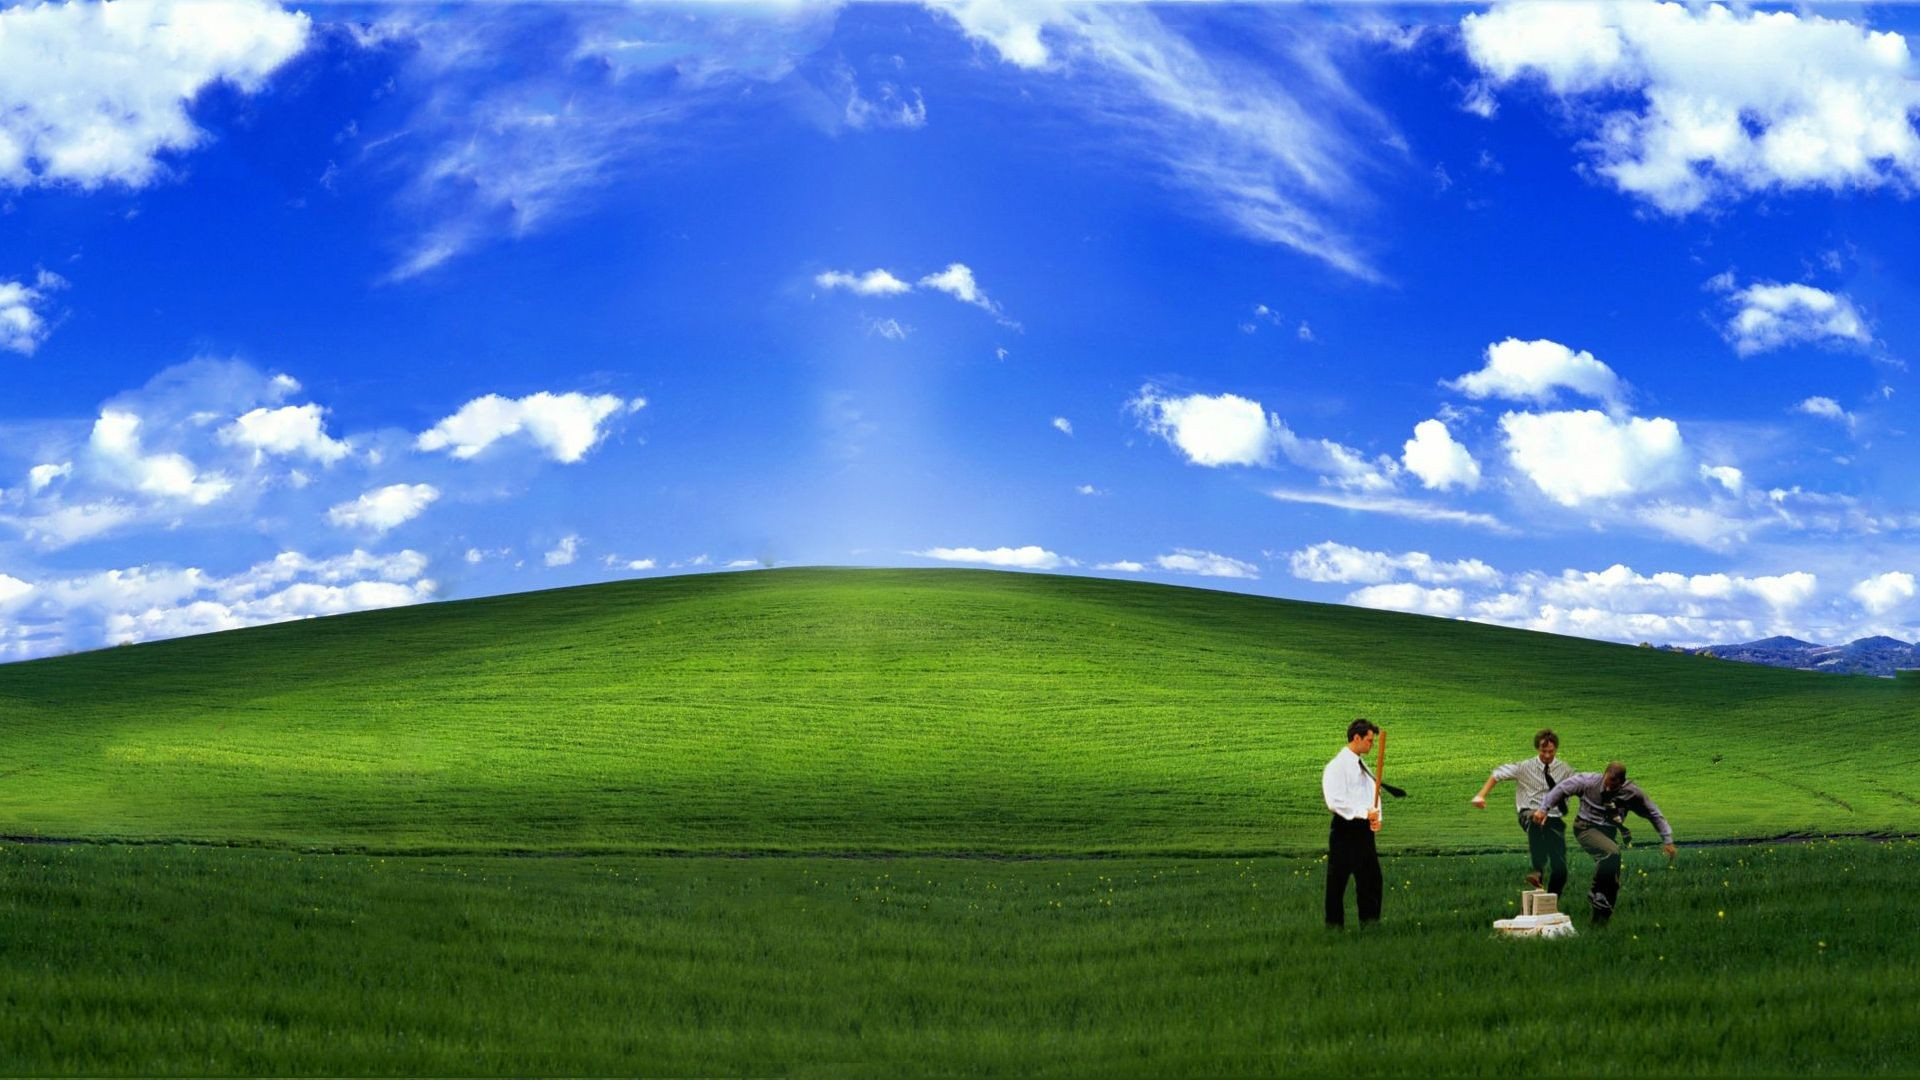 Office Space Windows Background wallpaper - 1159928